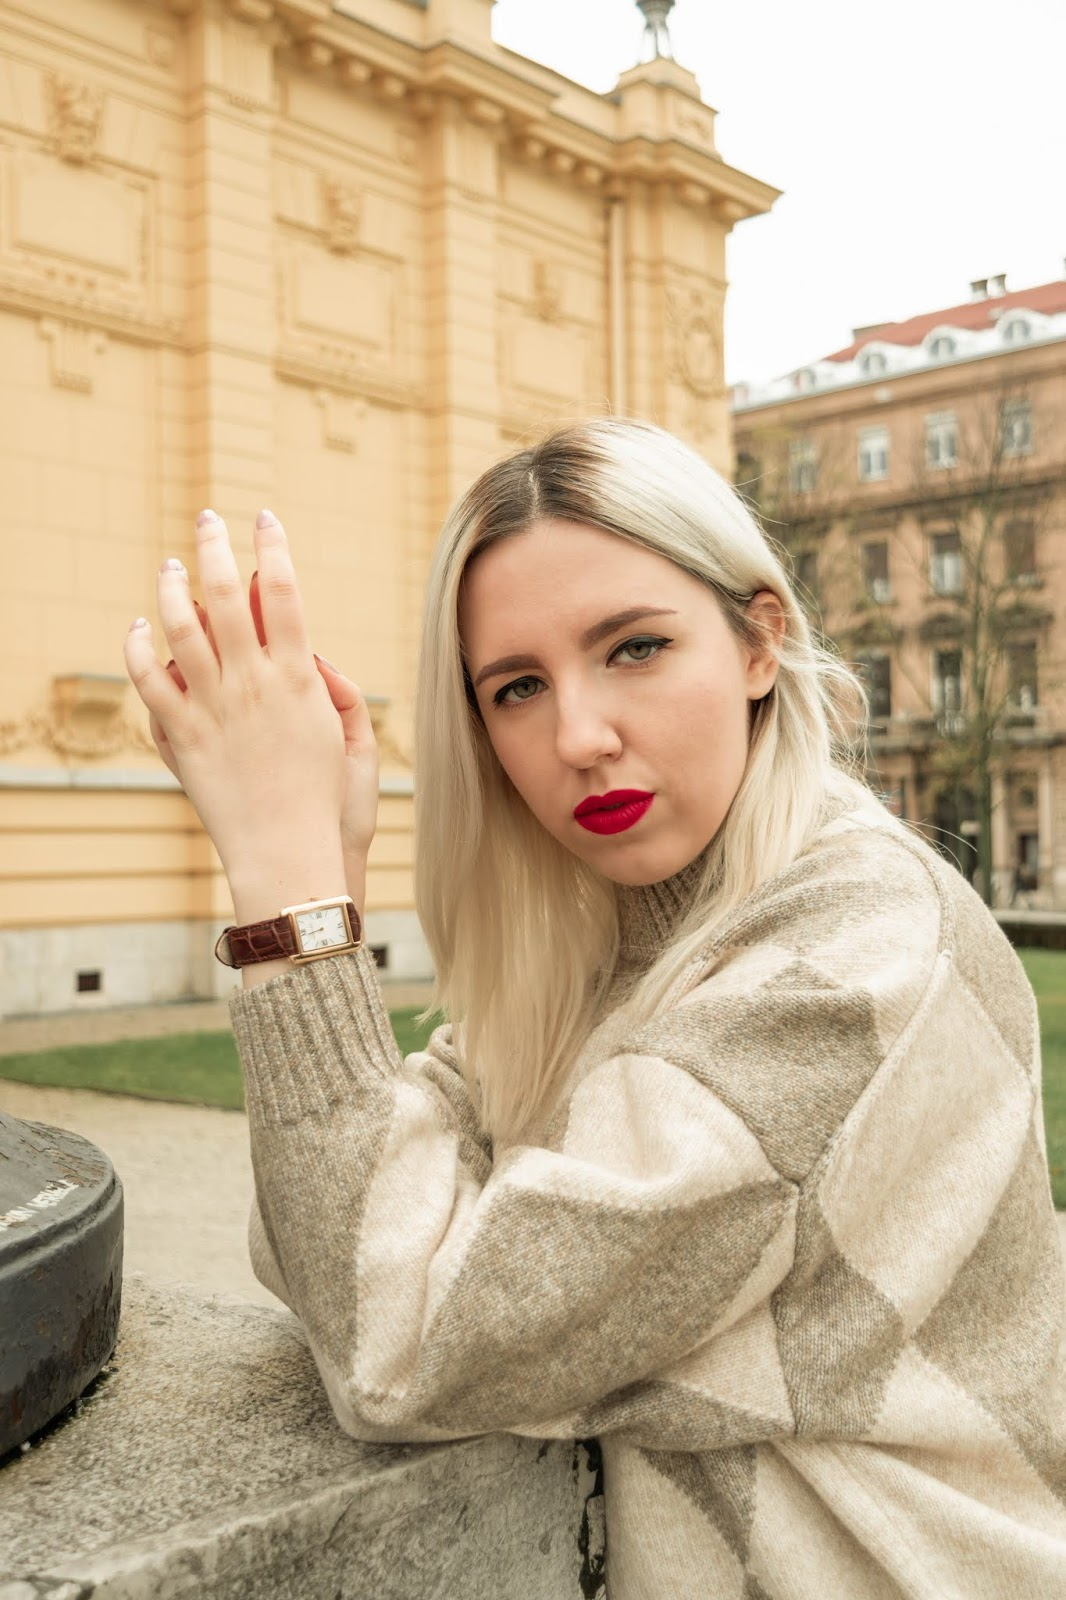 Fashion blogger wearing Fall sweater, red lipstick and Dean Brochard Classique timepiece with dark brown leather strap